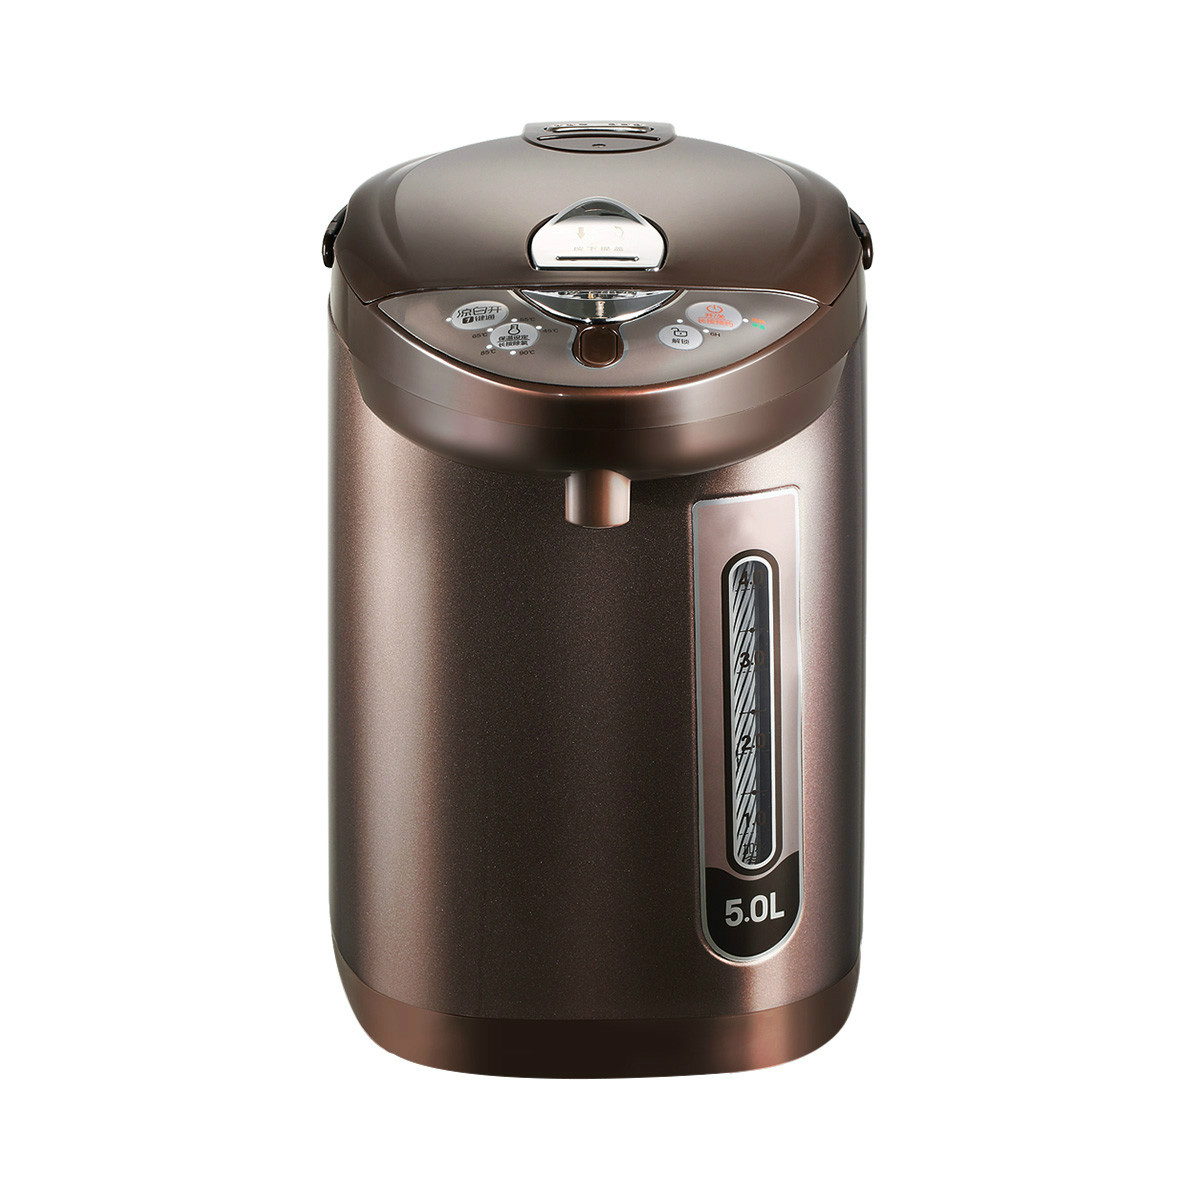 Electric thermos water bottle is used to boil flask 304 stainless steel electric kettle is used to boil water 304 stainless steel